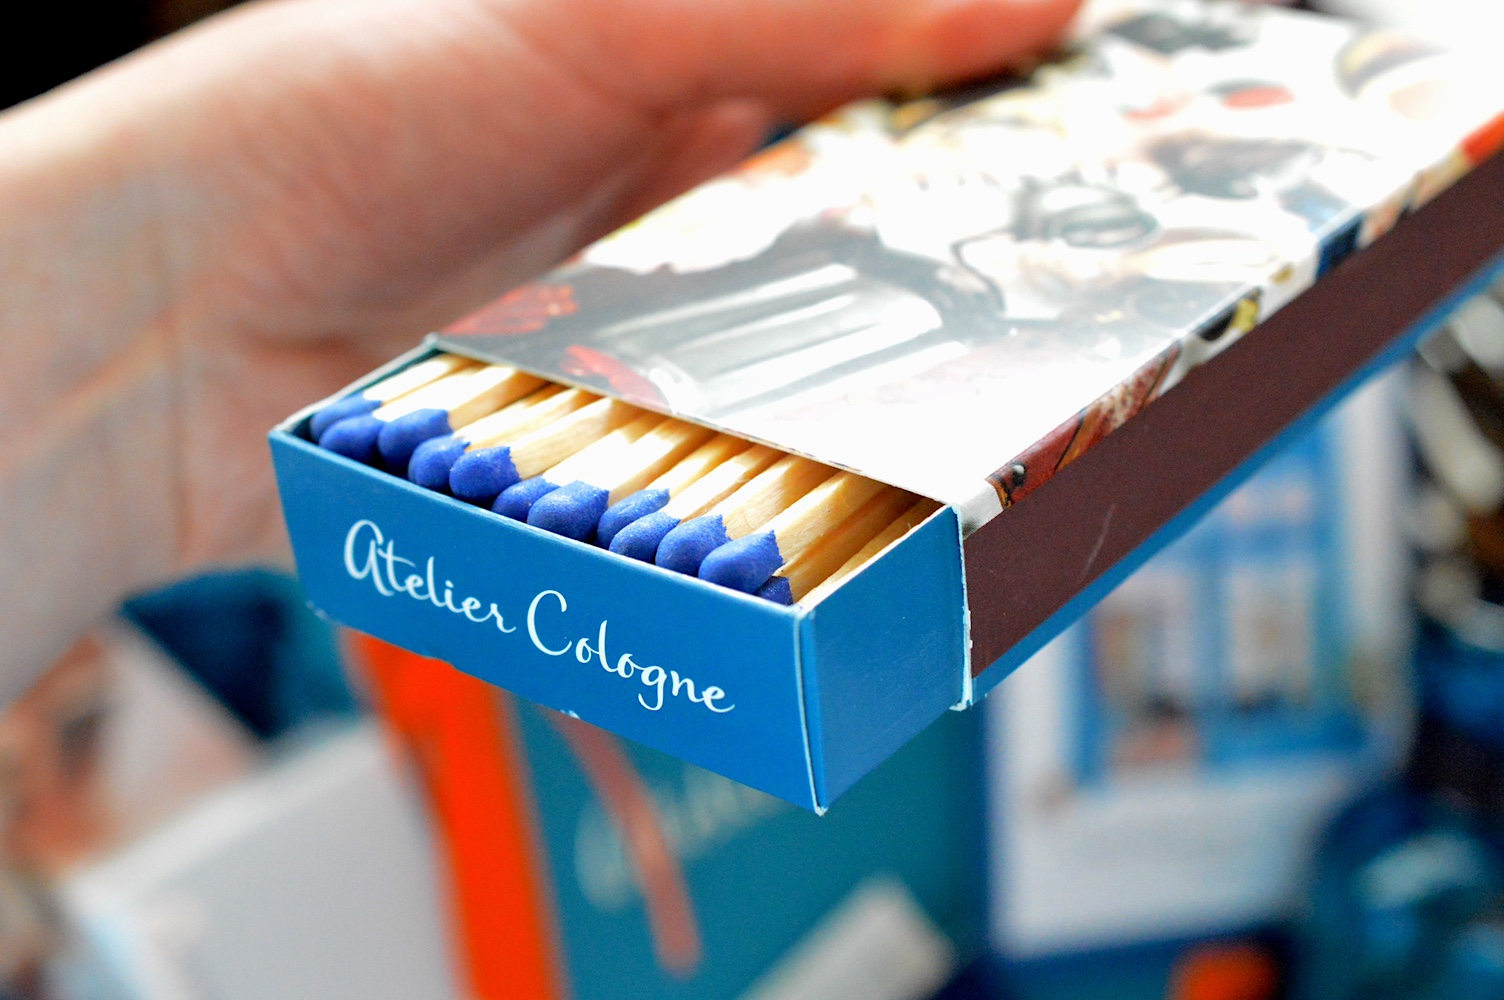 Atelier Cologne matchsticks